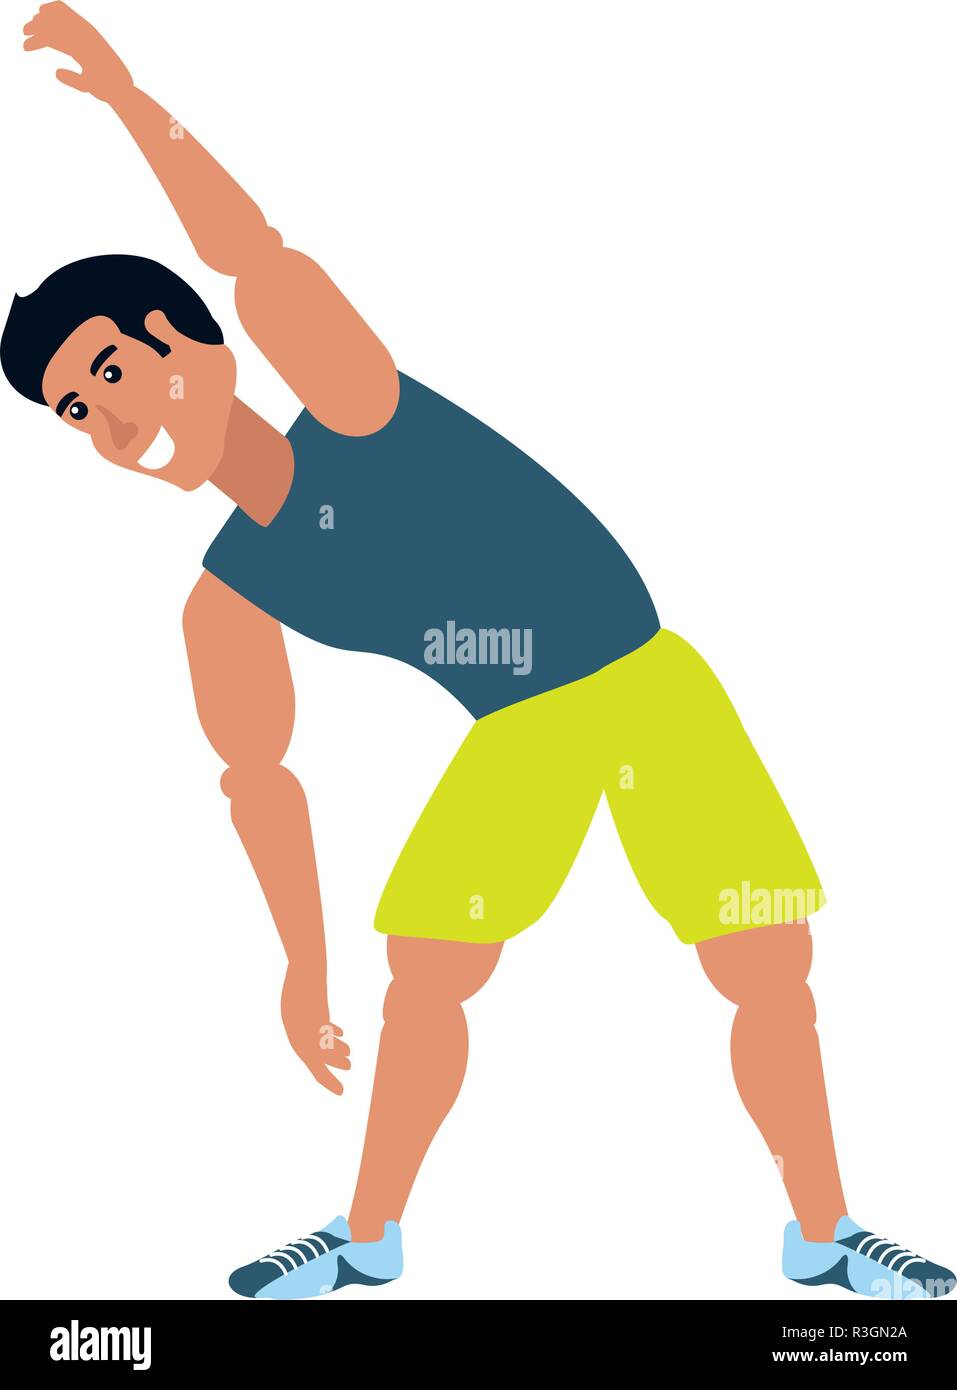 Man Cartoon Stretching Design High Resolution Stock Photography And Images Alamy